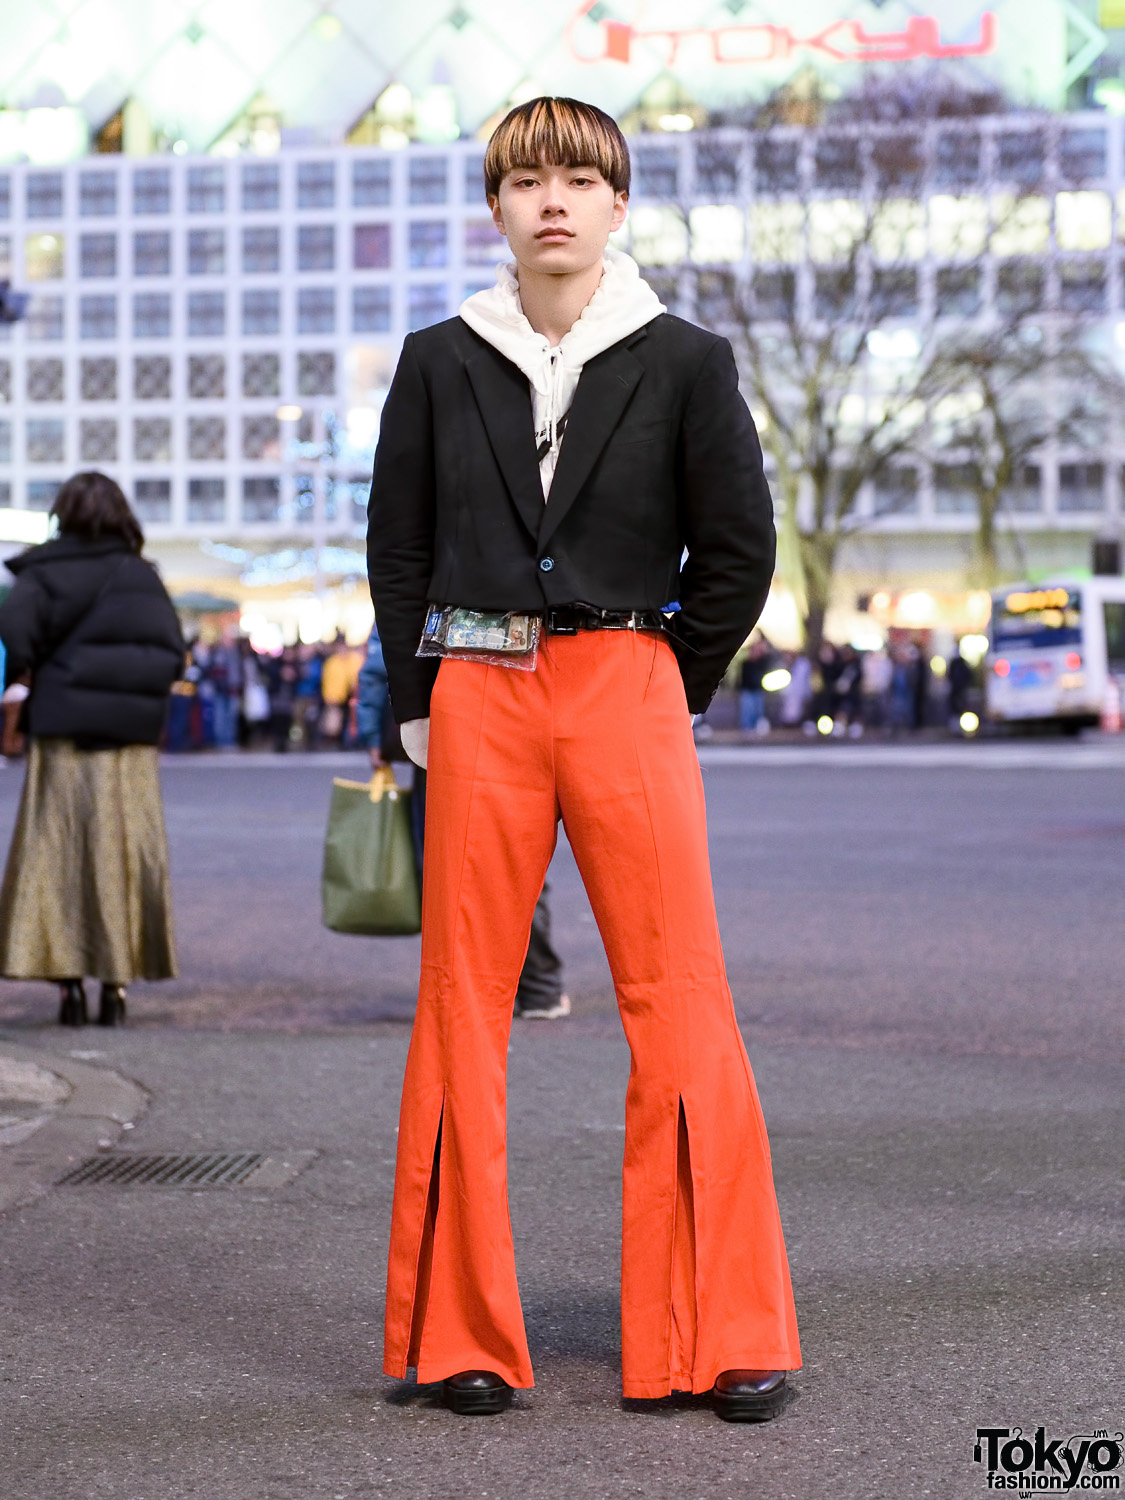 Tokyo Menswear Street Style w/ Blunt Bob, Cropped Blazer, Faith Tokyo Hoodie, Forever21 Flared Pants & Zara Shoes